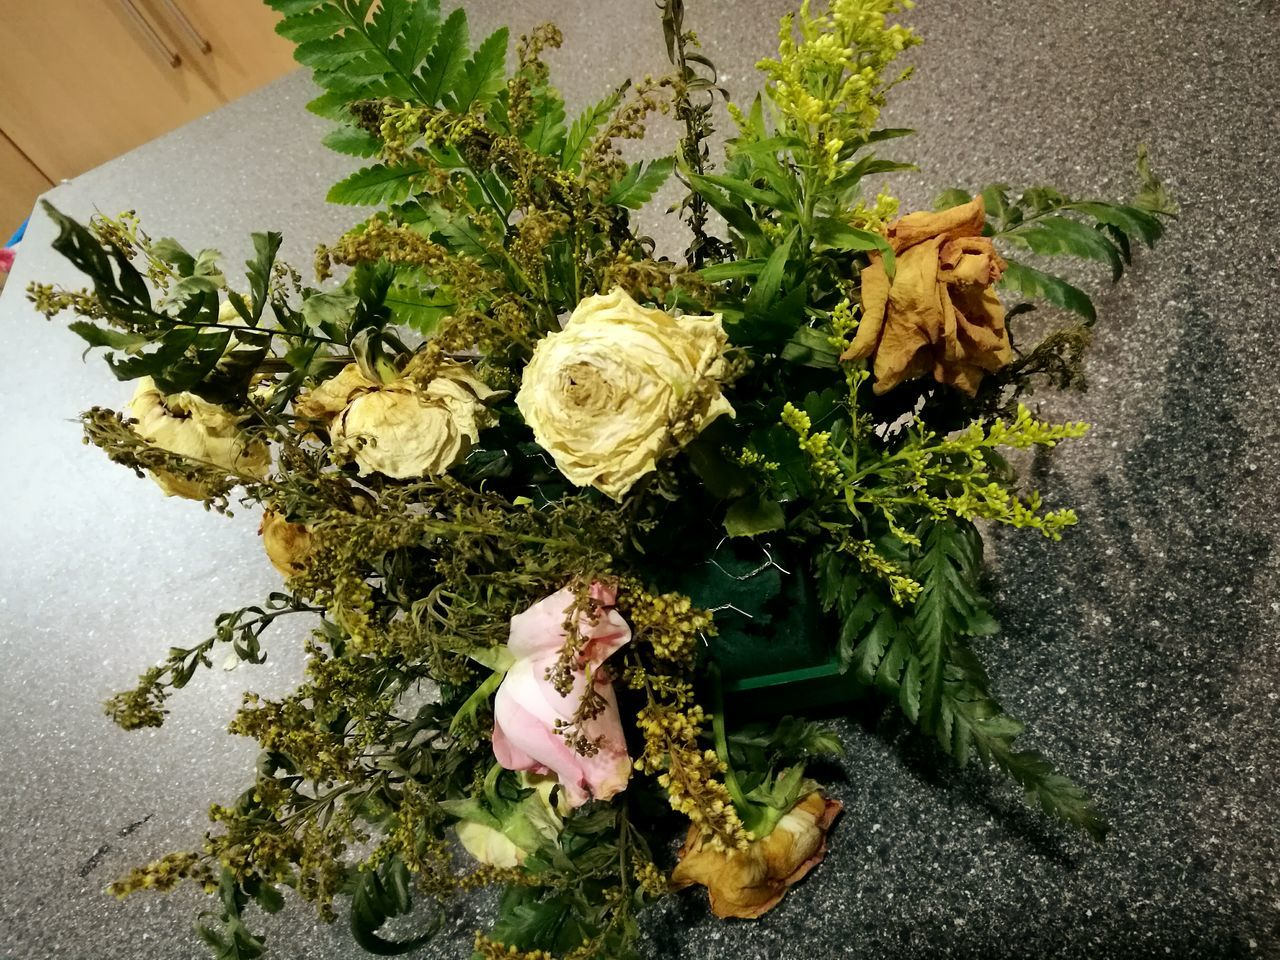 High Angle View Flower Plant Indoors  No People Nature Close-up Dried Flowers Wilting Flowers Roses Dried Roses